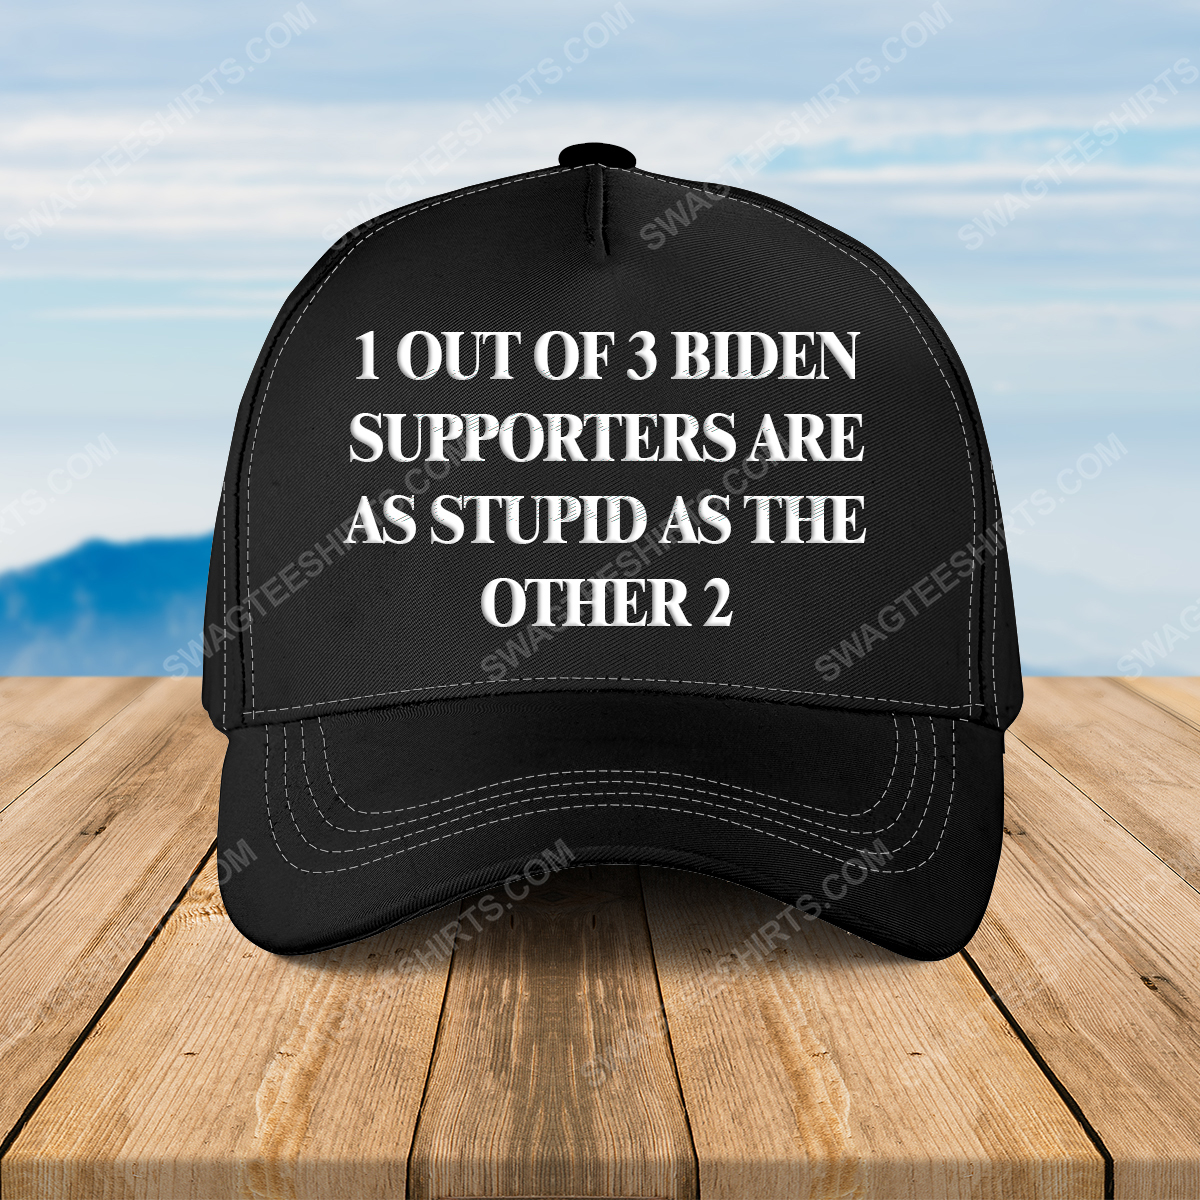 1 out of 3 biden supporters are as stupid as the other 2 full print classic hat 1 - Copy (2)